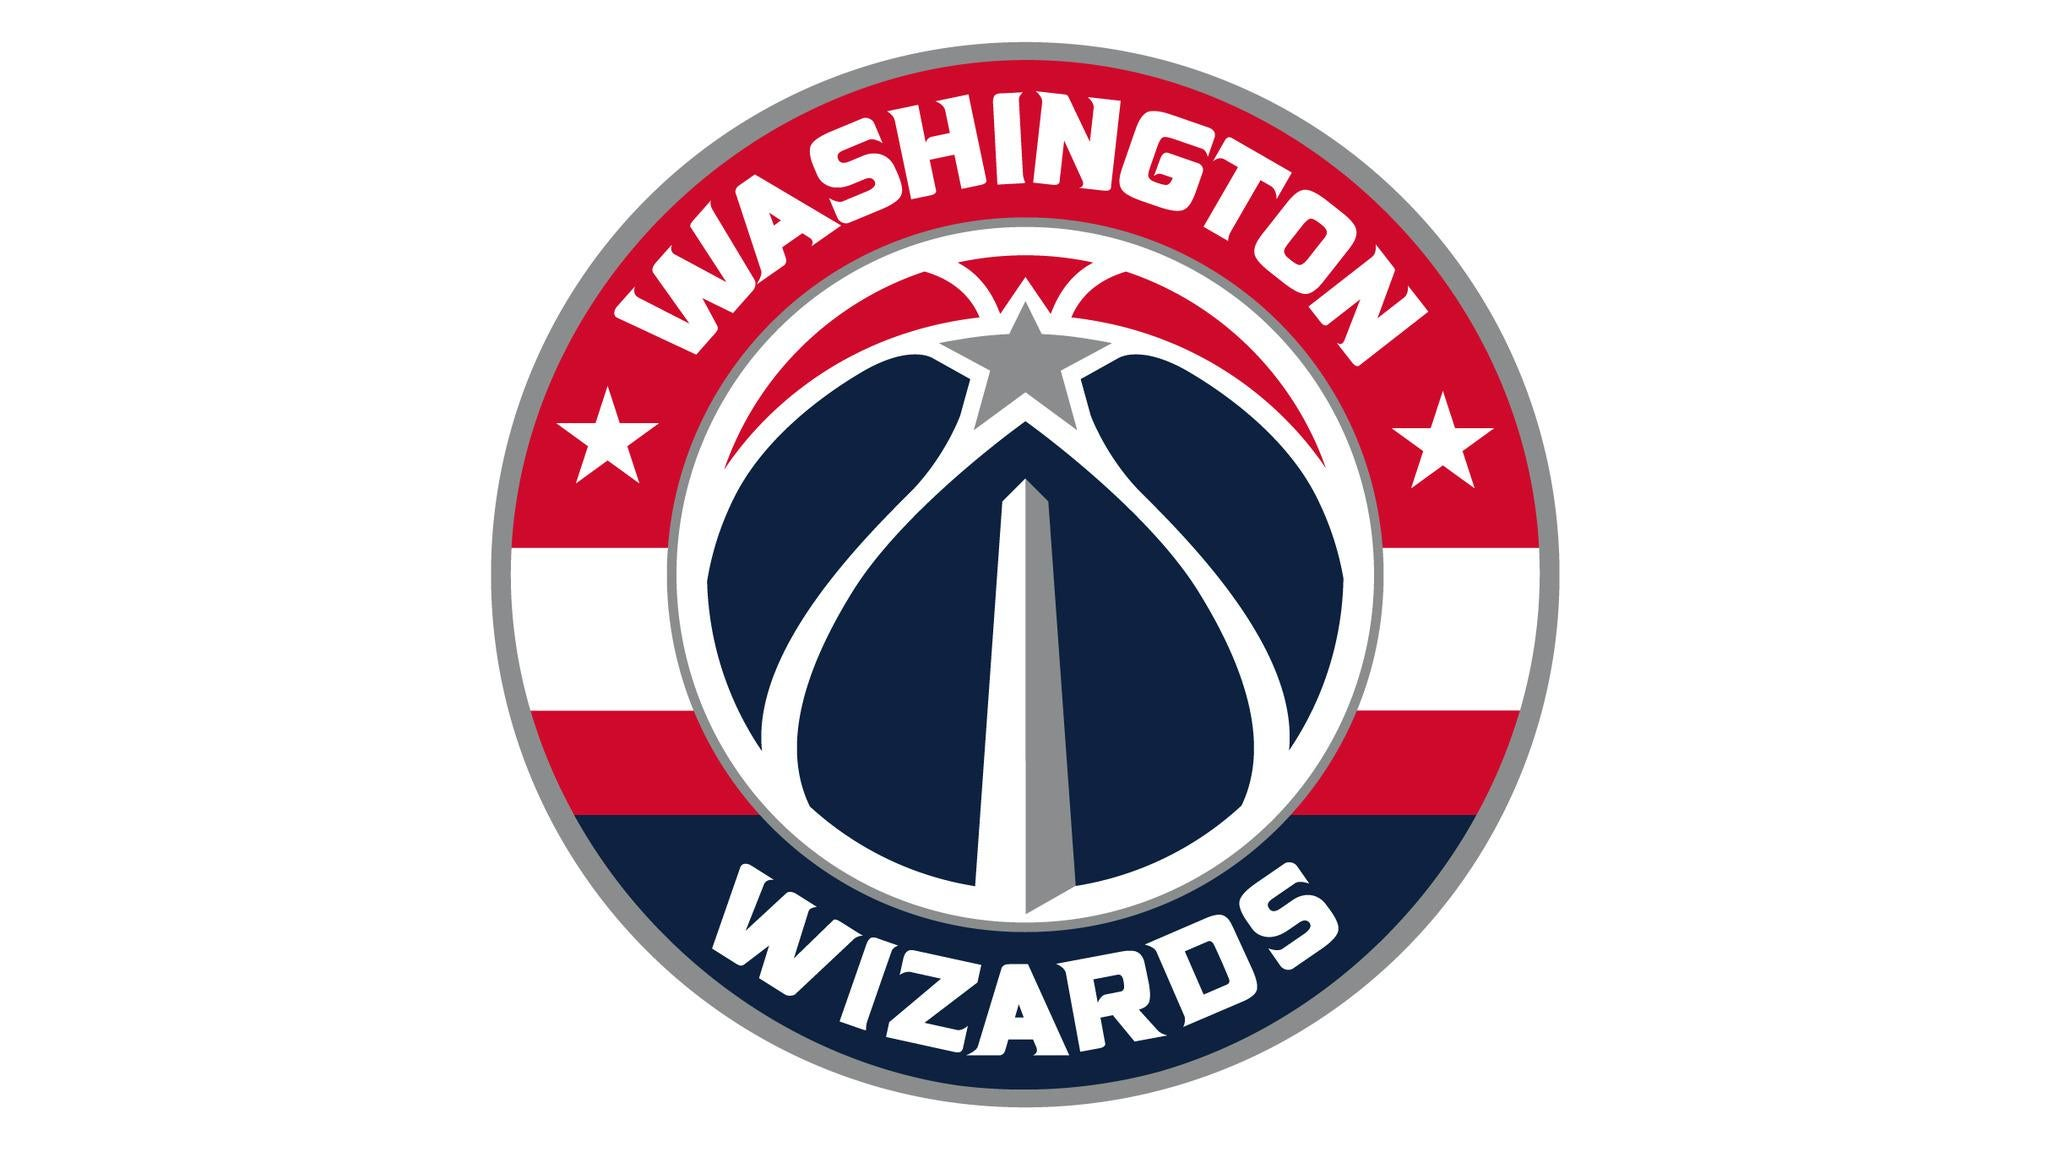 East. Conf. First Round: Toronto Raptors at Wizards Rd 1 Hm Gm 1